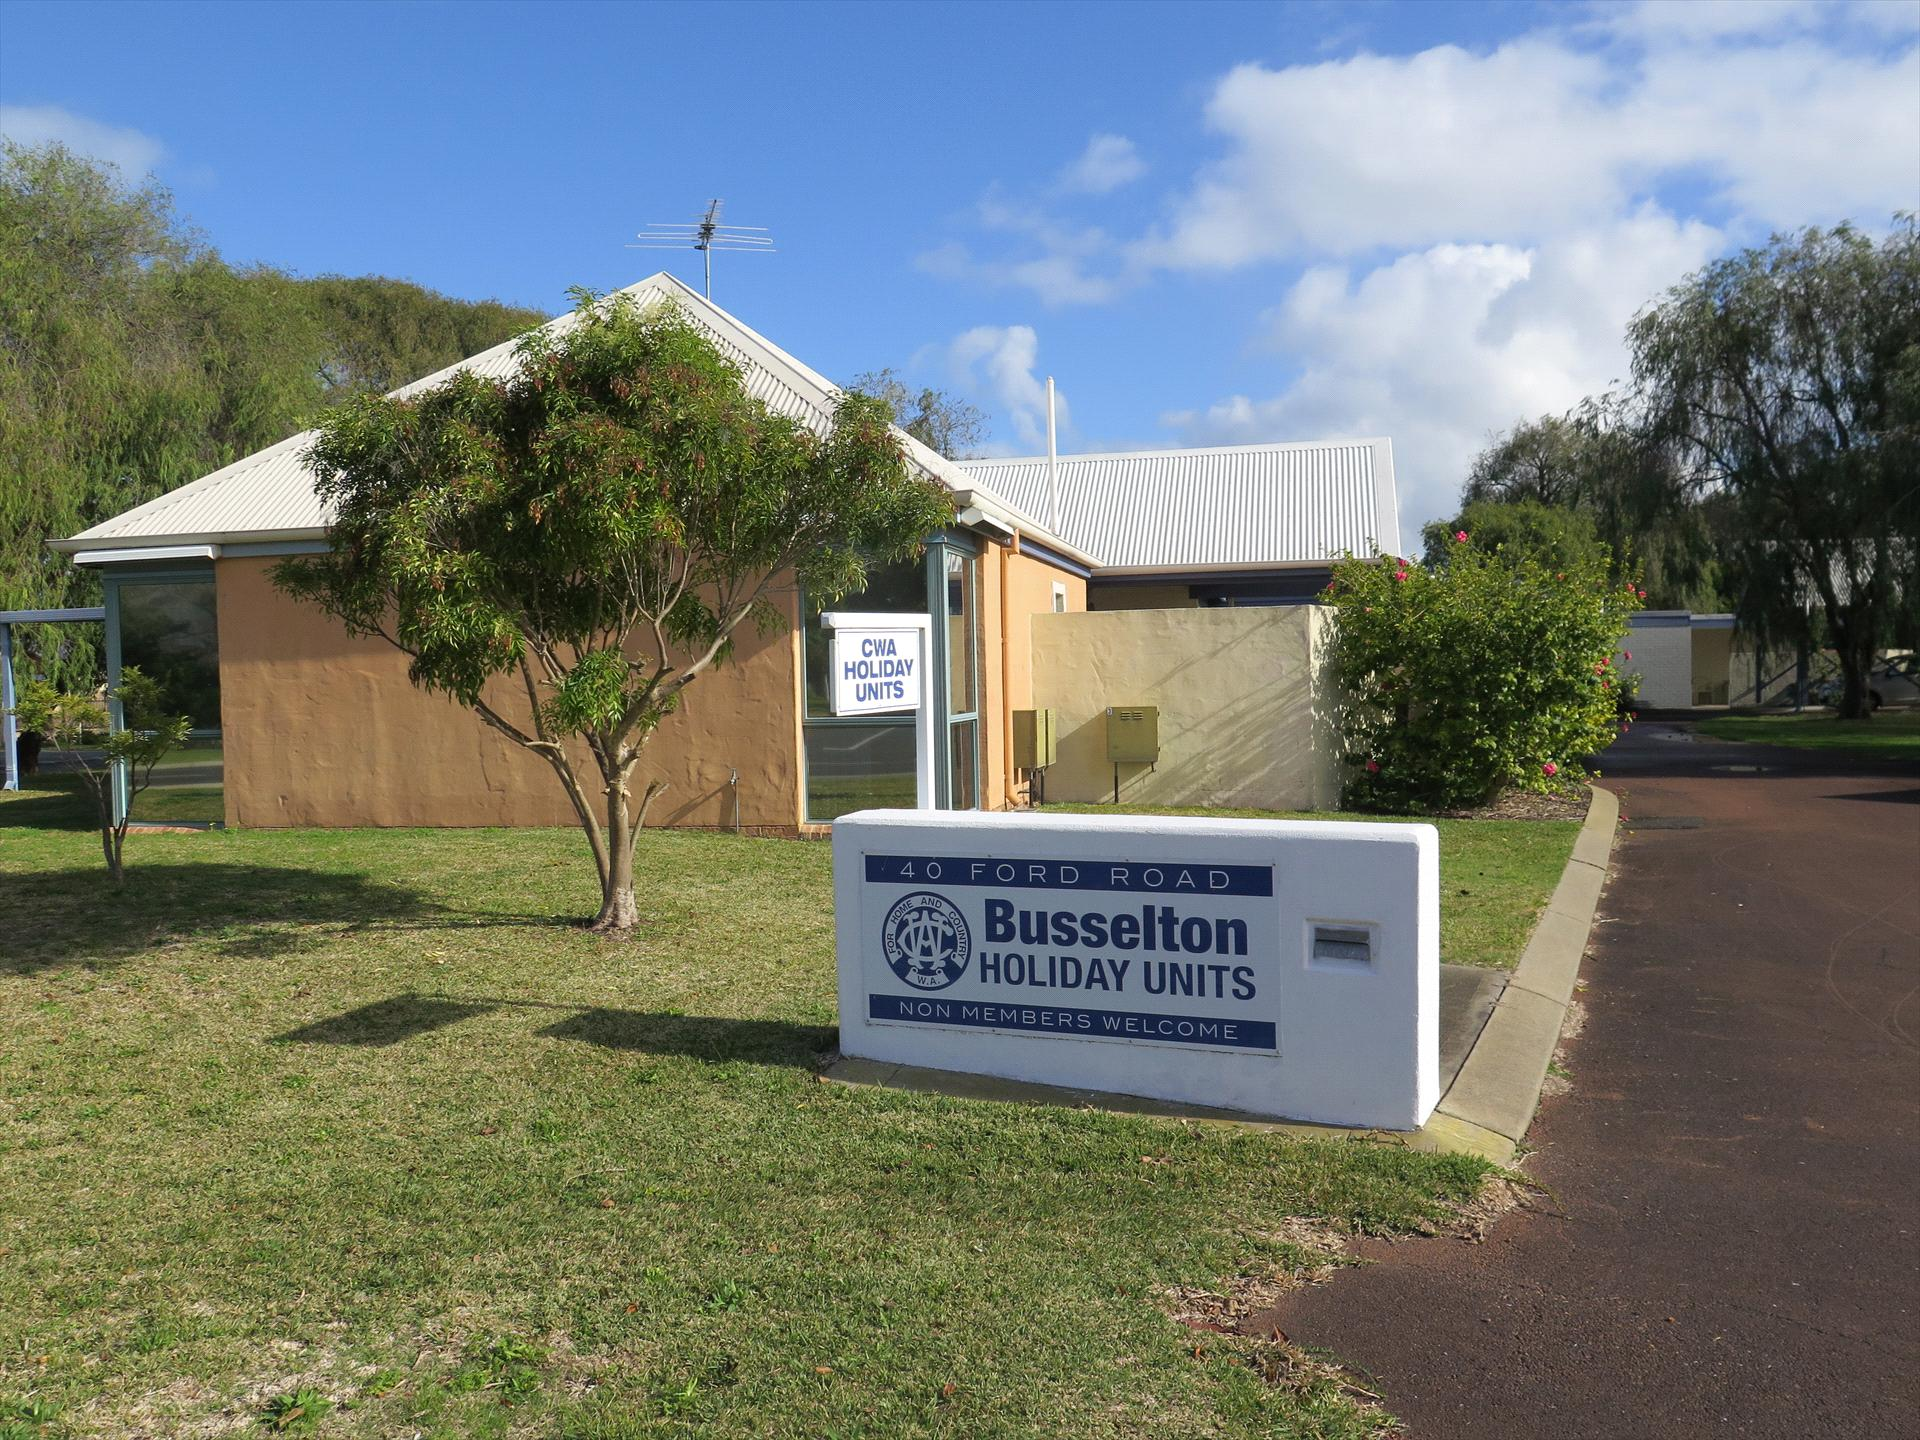 Country Womens Association (CWA) Busselton Holiday Units logo